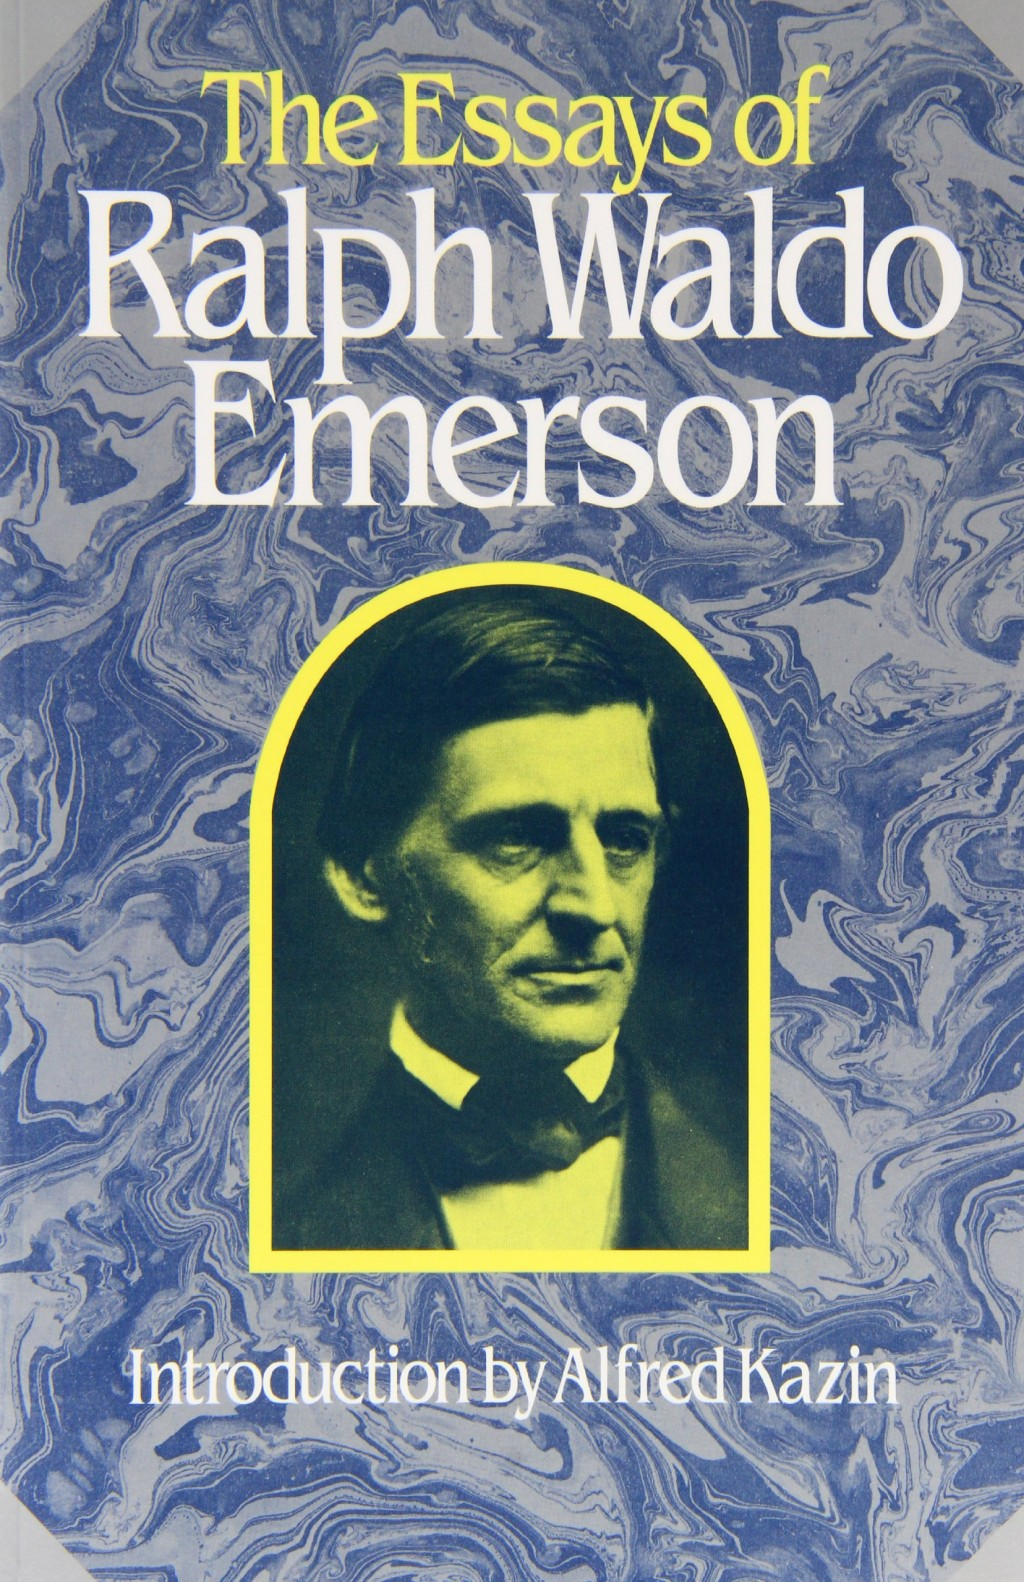 001 Ralph Waldo Emerson Essays Essay Example Unusual Nature And Selected By Pdf Download First Second Series Large